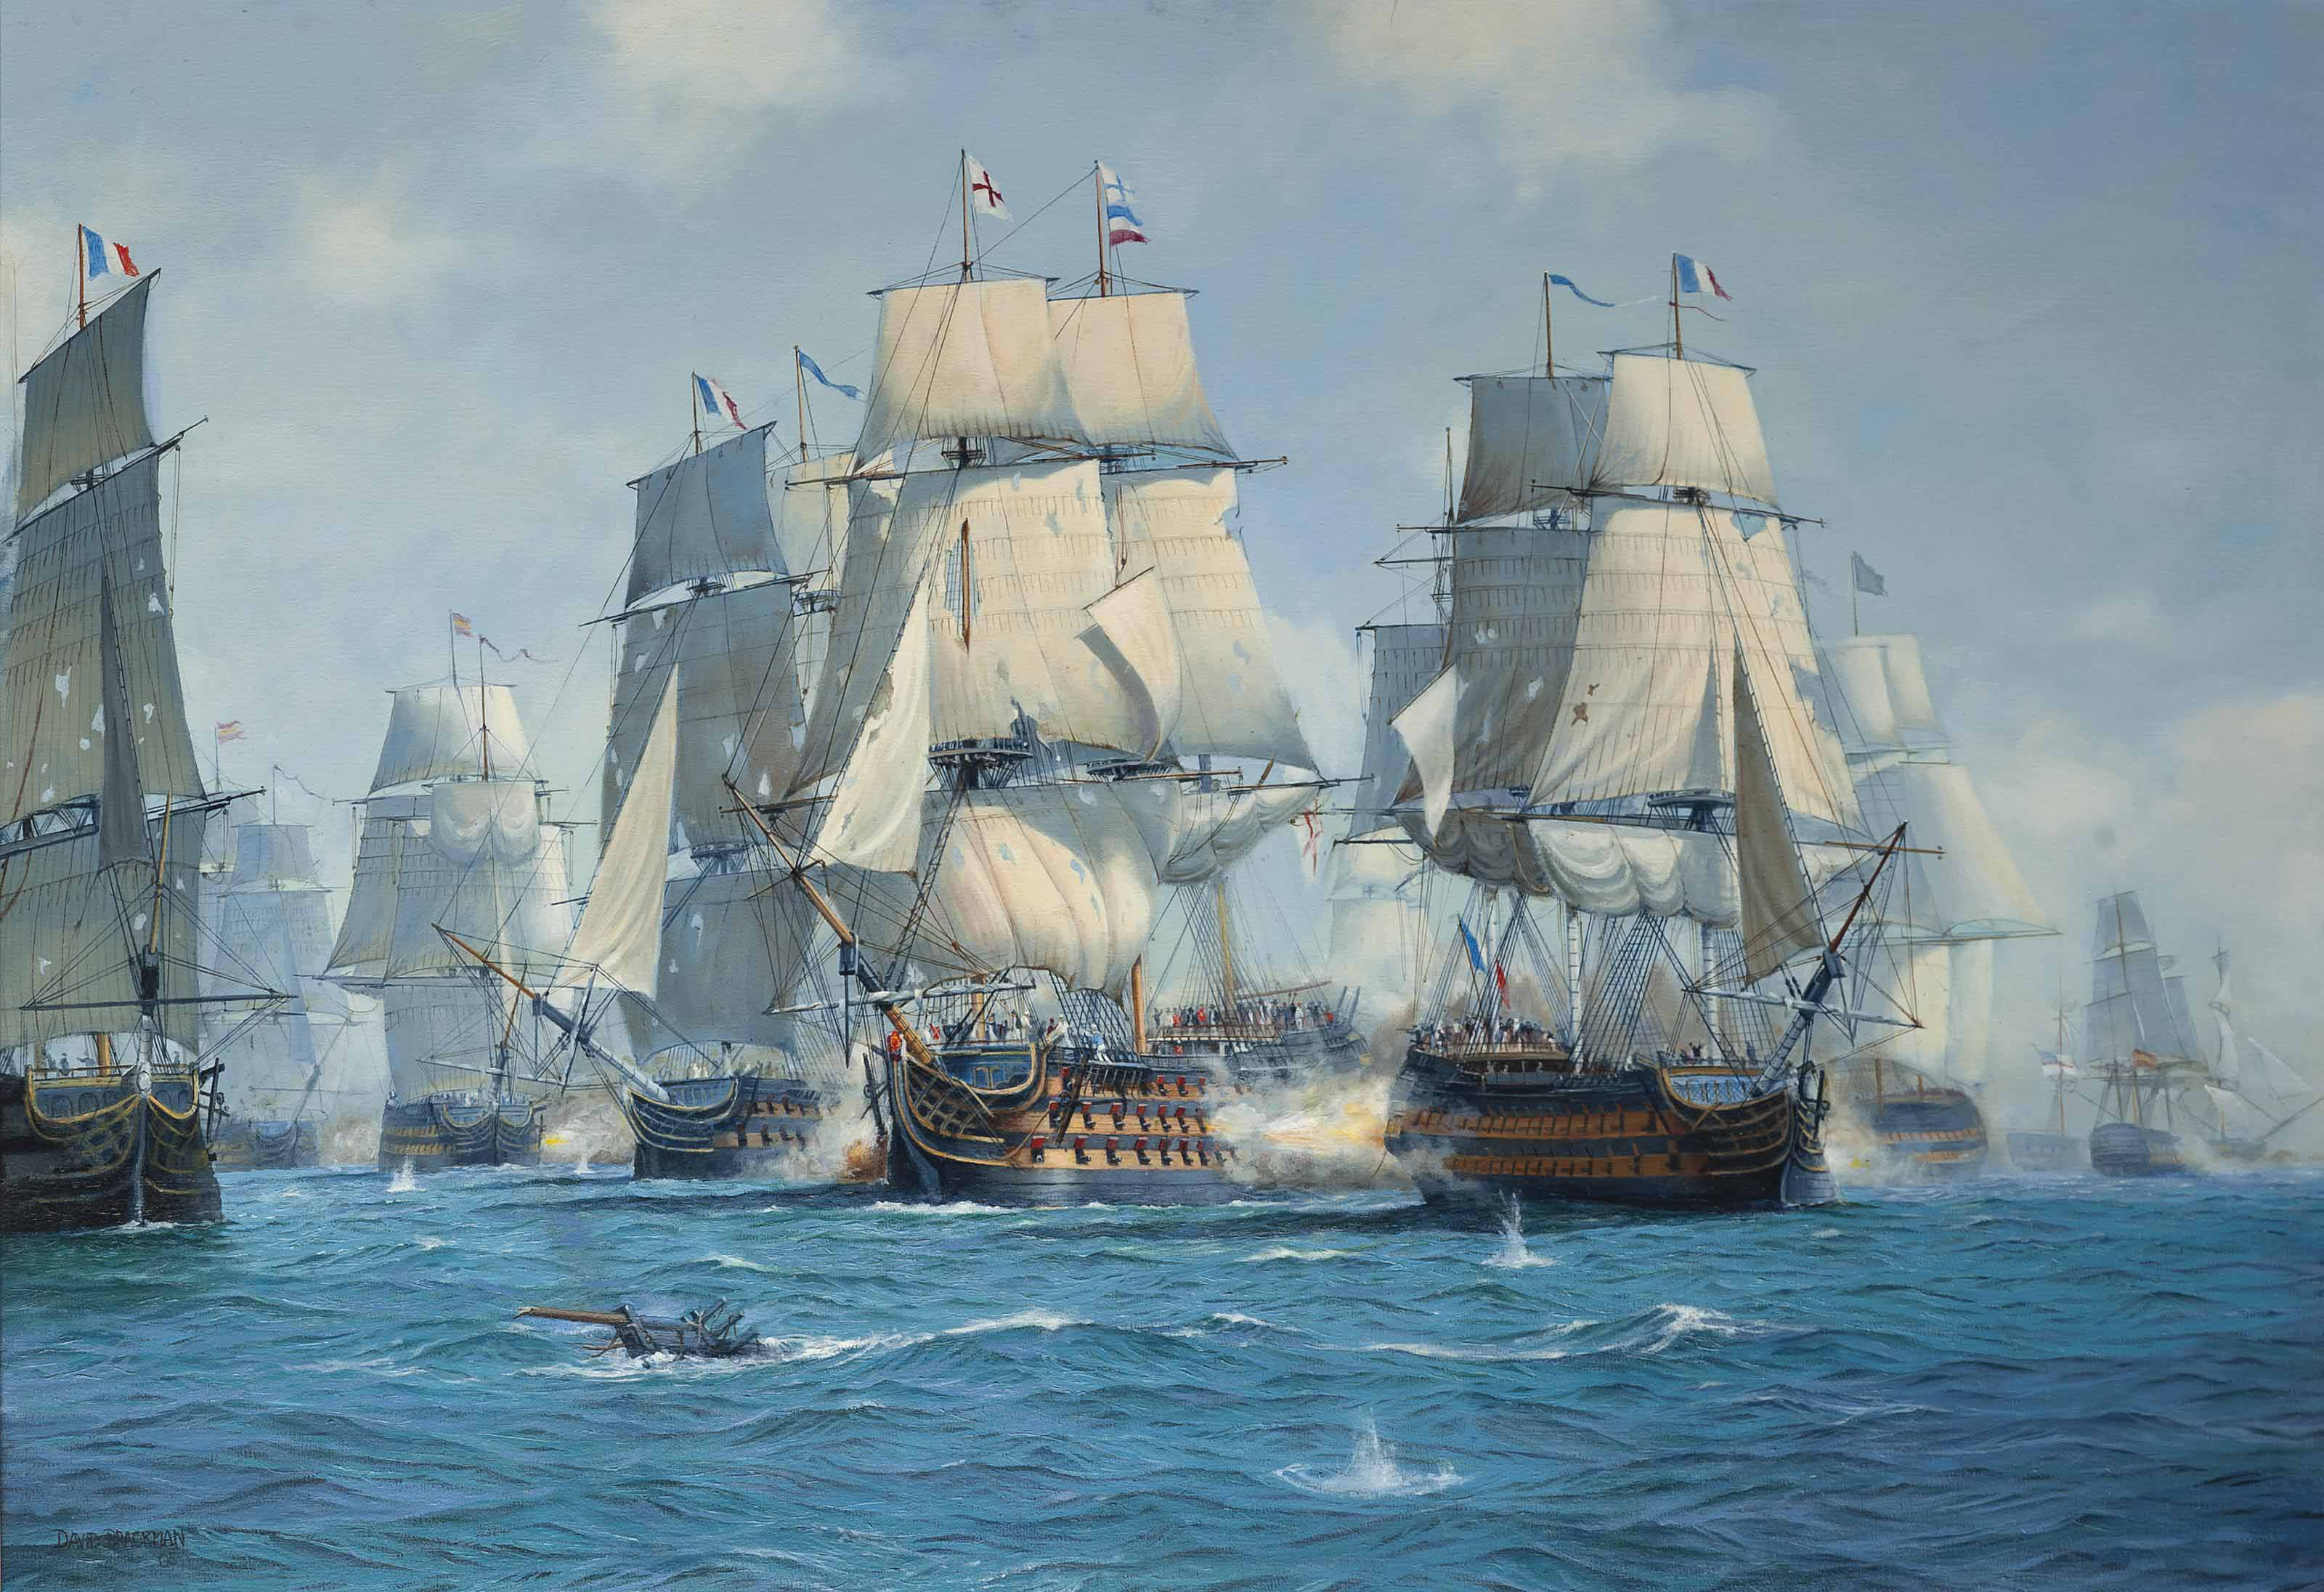 H.M.S. Victory, a bow view, breaking the enemy line at the Battle of Trafalgar, 21 October 1805